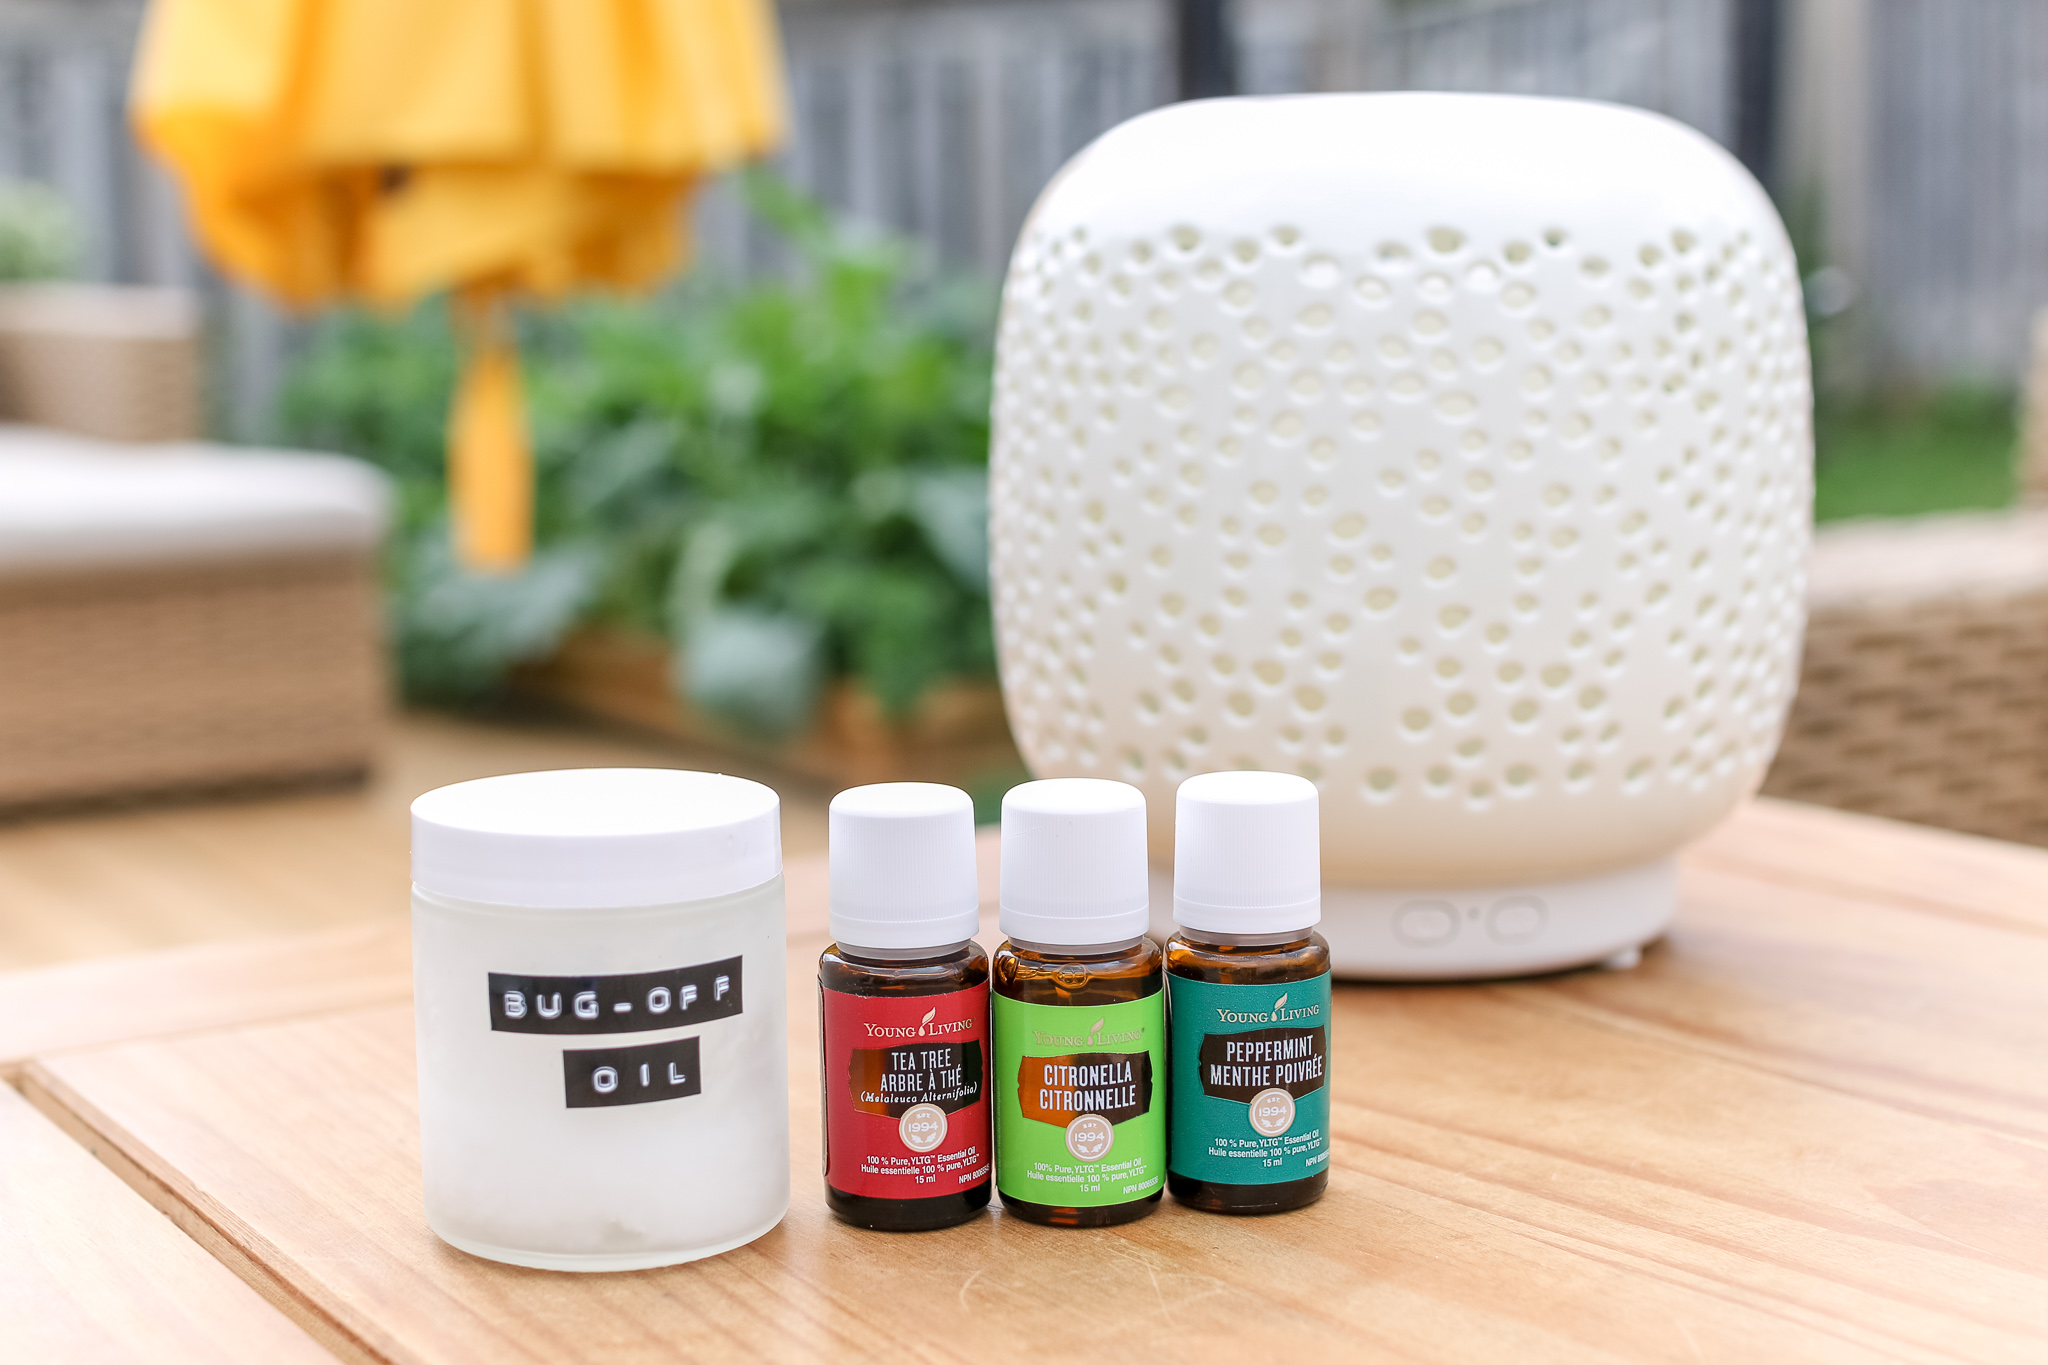 The ultimate summer essential oil survival guide, with recipes for DIY bug spray, sunburn relief, after bite and more! These 5 must-have DIYs are 100% non-toxic, healthy and safe to use for the whole family!